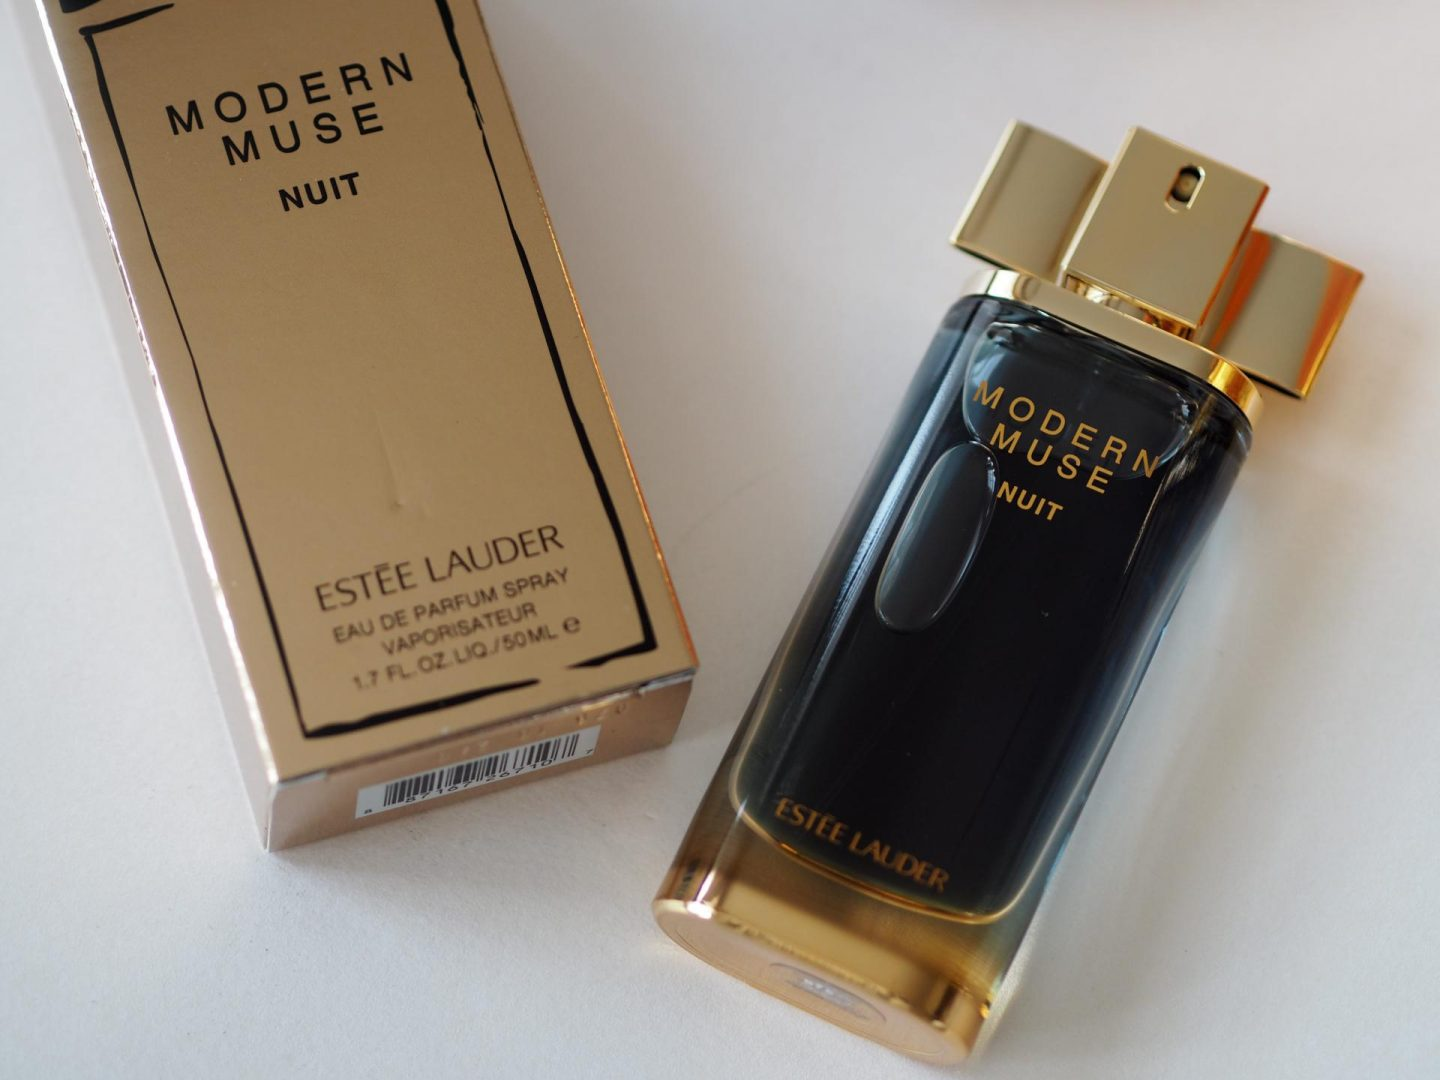 by-terry-terrybly-oud_estee-lauder-modern-muse-nuit_winter-fragrance-edit-10